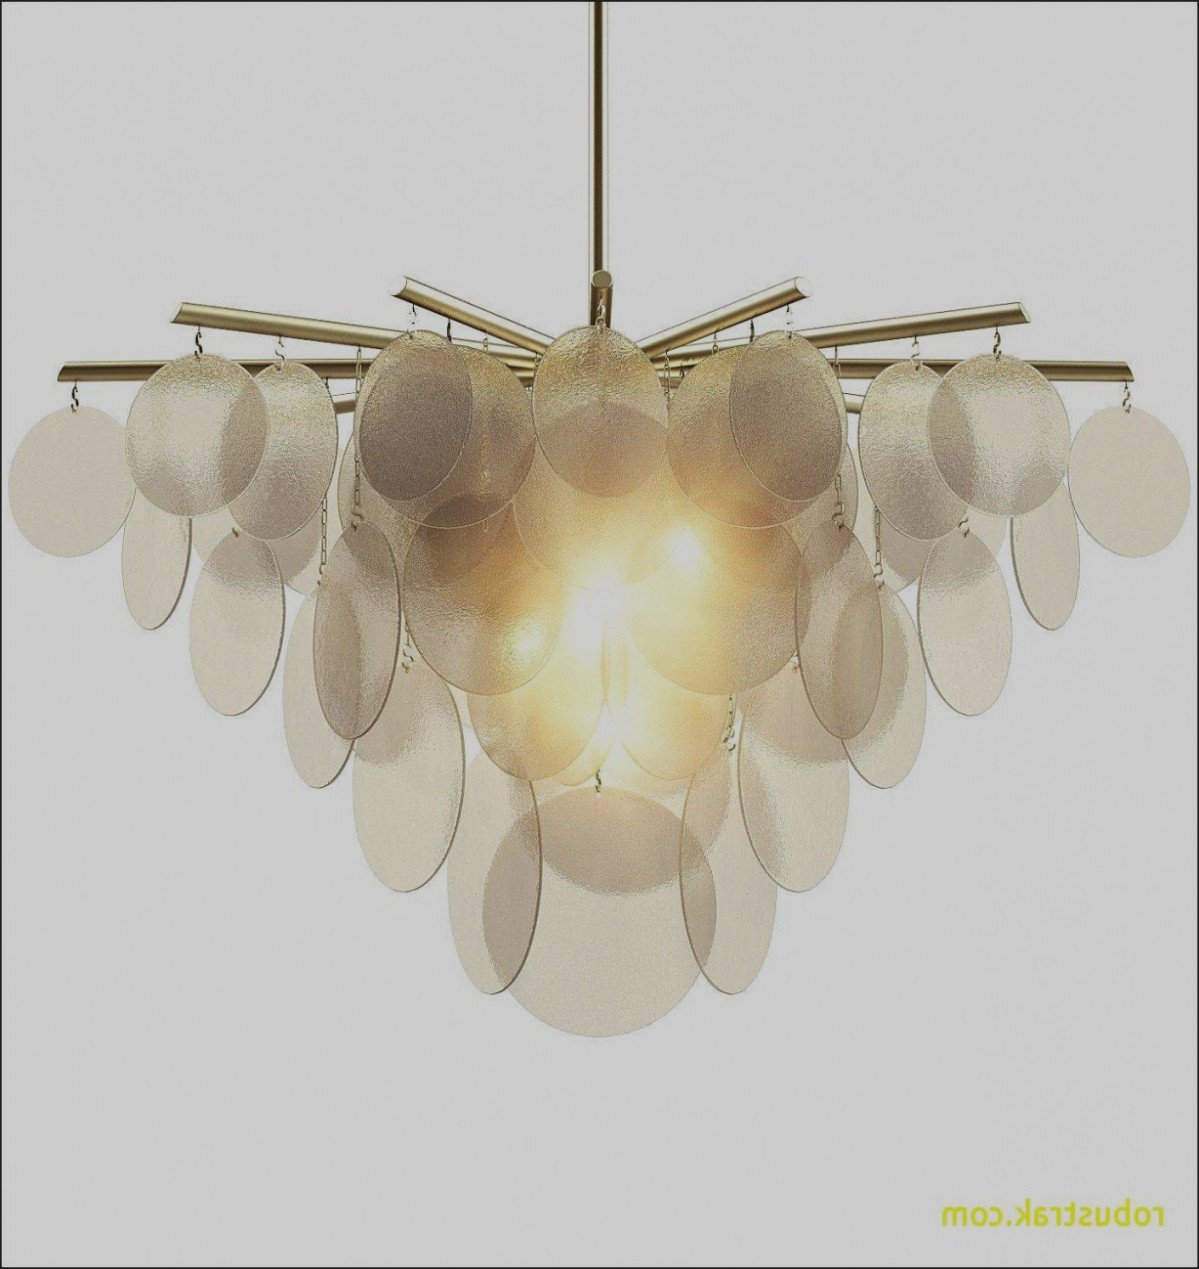 Chandelier Light for Bedroom Lovely Flush Mount Chandelier Elegant Pendant Light Revit